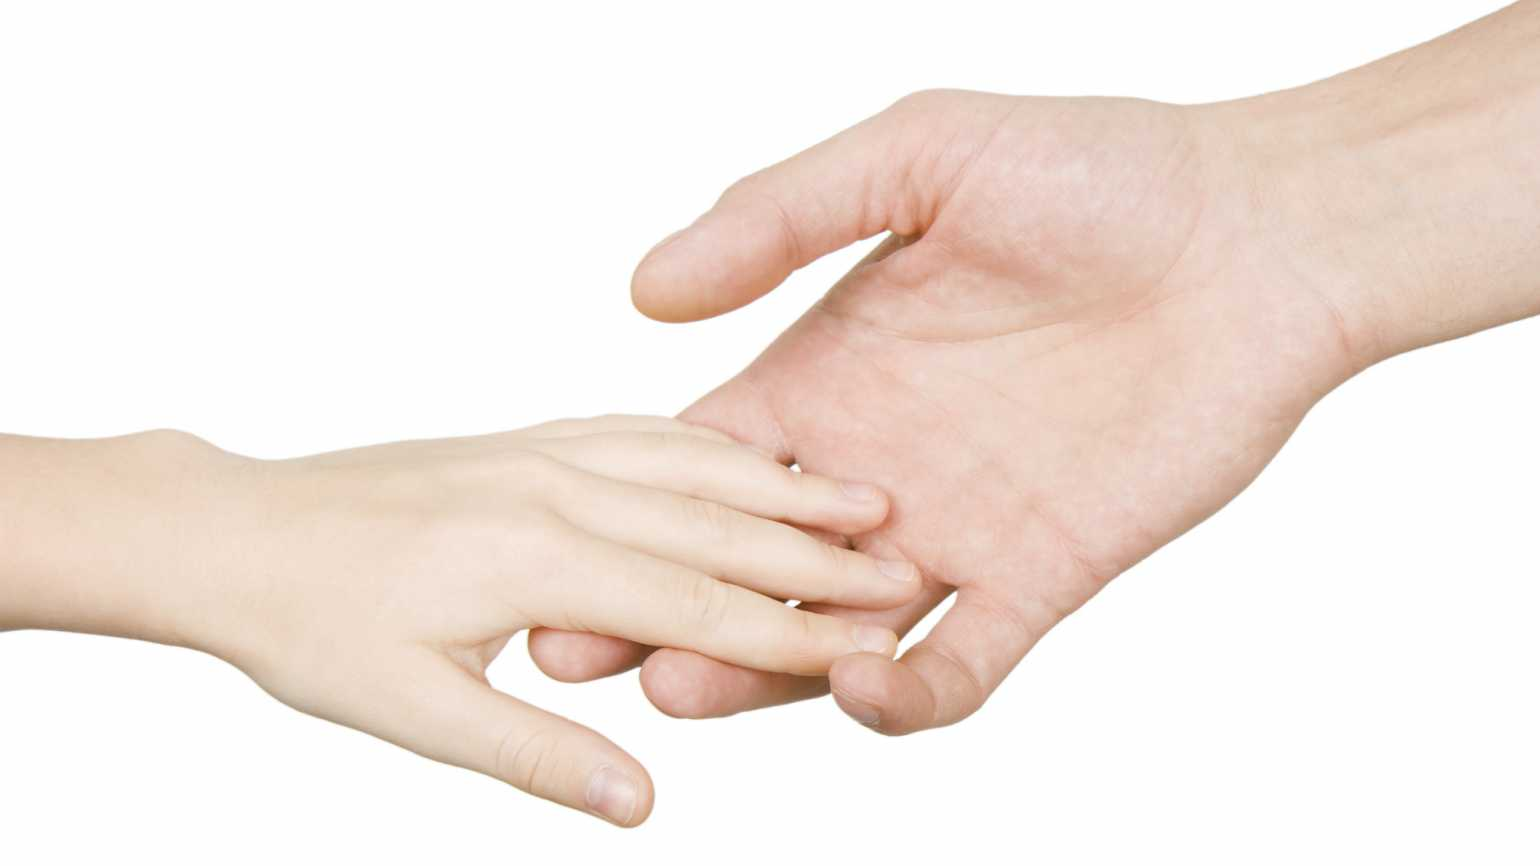 Parent holding a child's hand. Thinkstock.